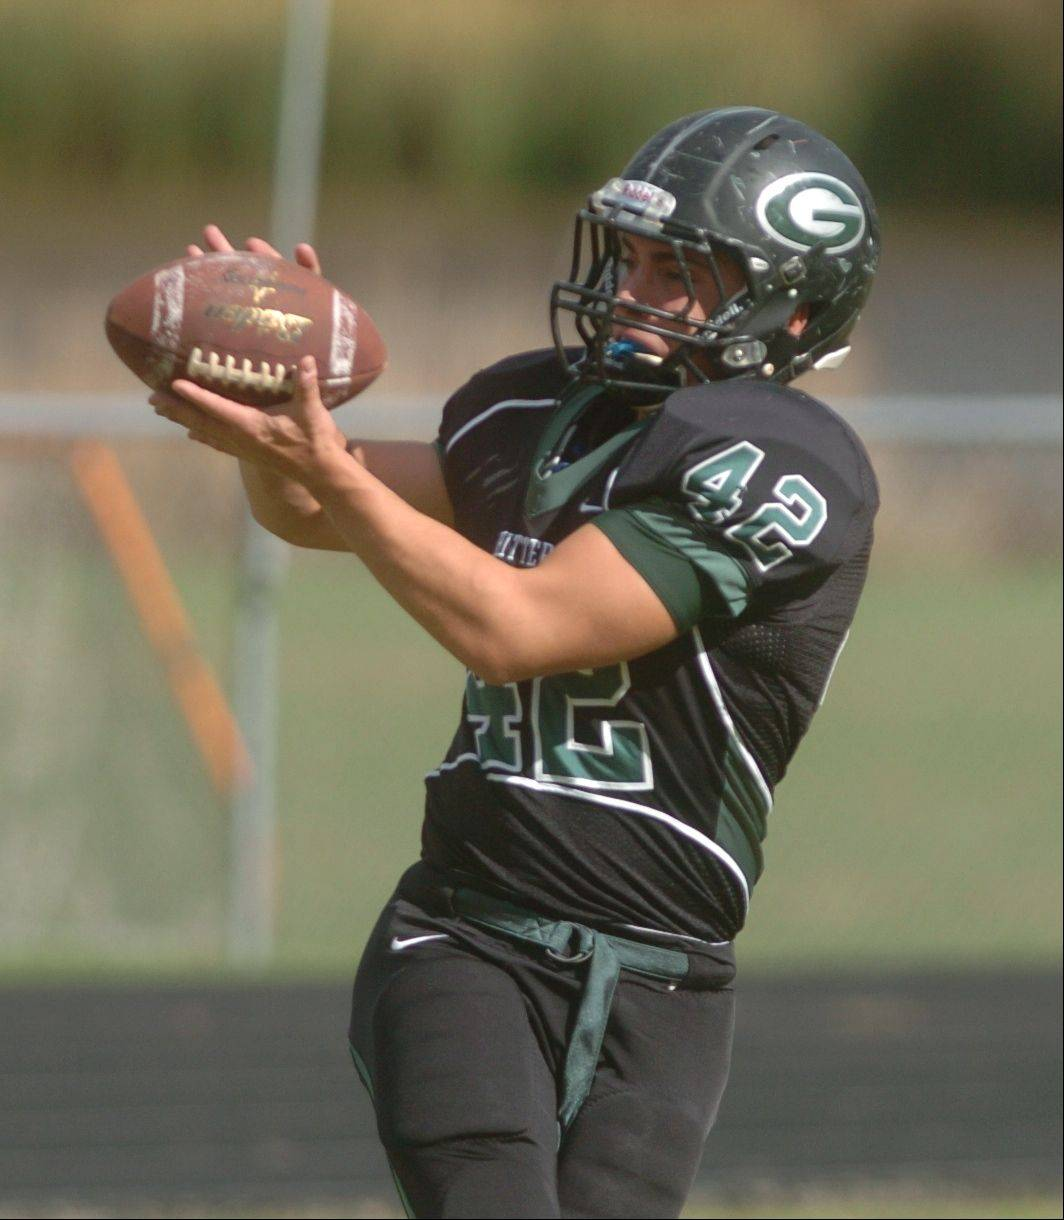 Glenbard West would be a perfect fit in the DuPage Valley Conference, but school officials say they have no interest in leaving the West Suburban Conference.